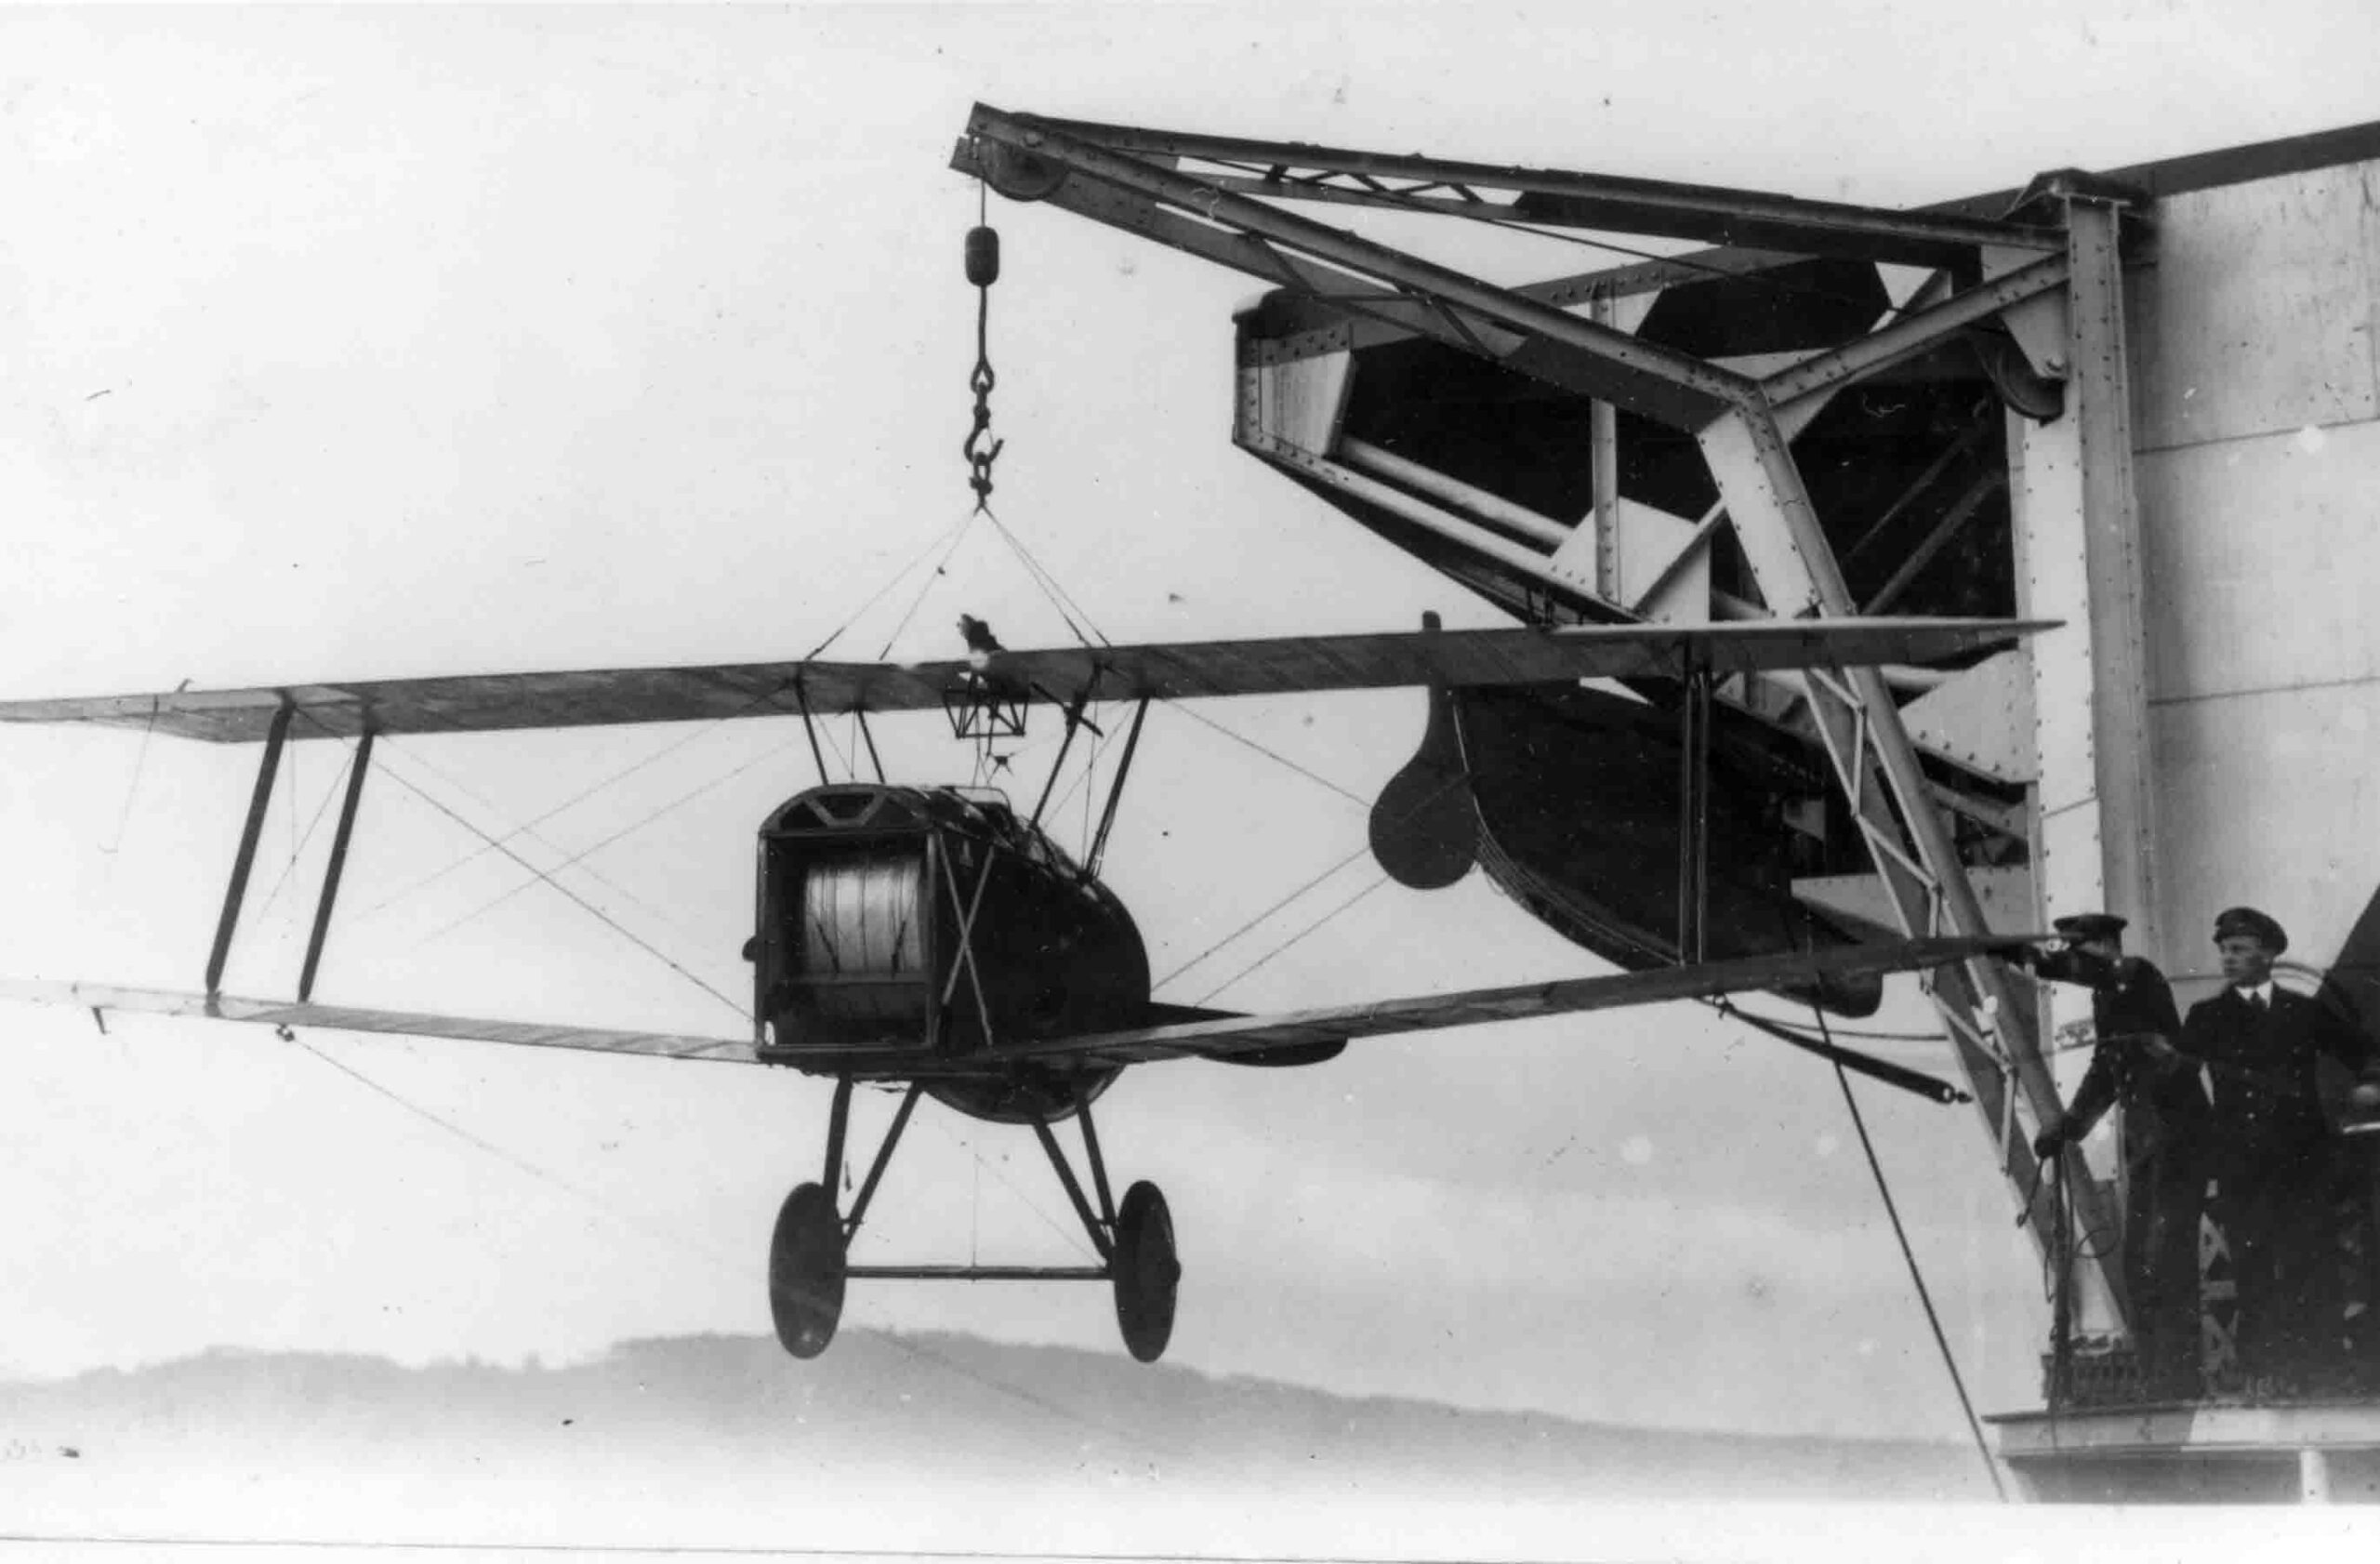 """X003-2602/15774: Sopwith 2F.1 Camel, serial N6602.  This aircraft, seen during transfer to HMS Furious on 5 April 1918, shows the fuselage """"broken"""" in two for transport and storage."""